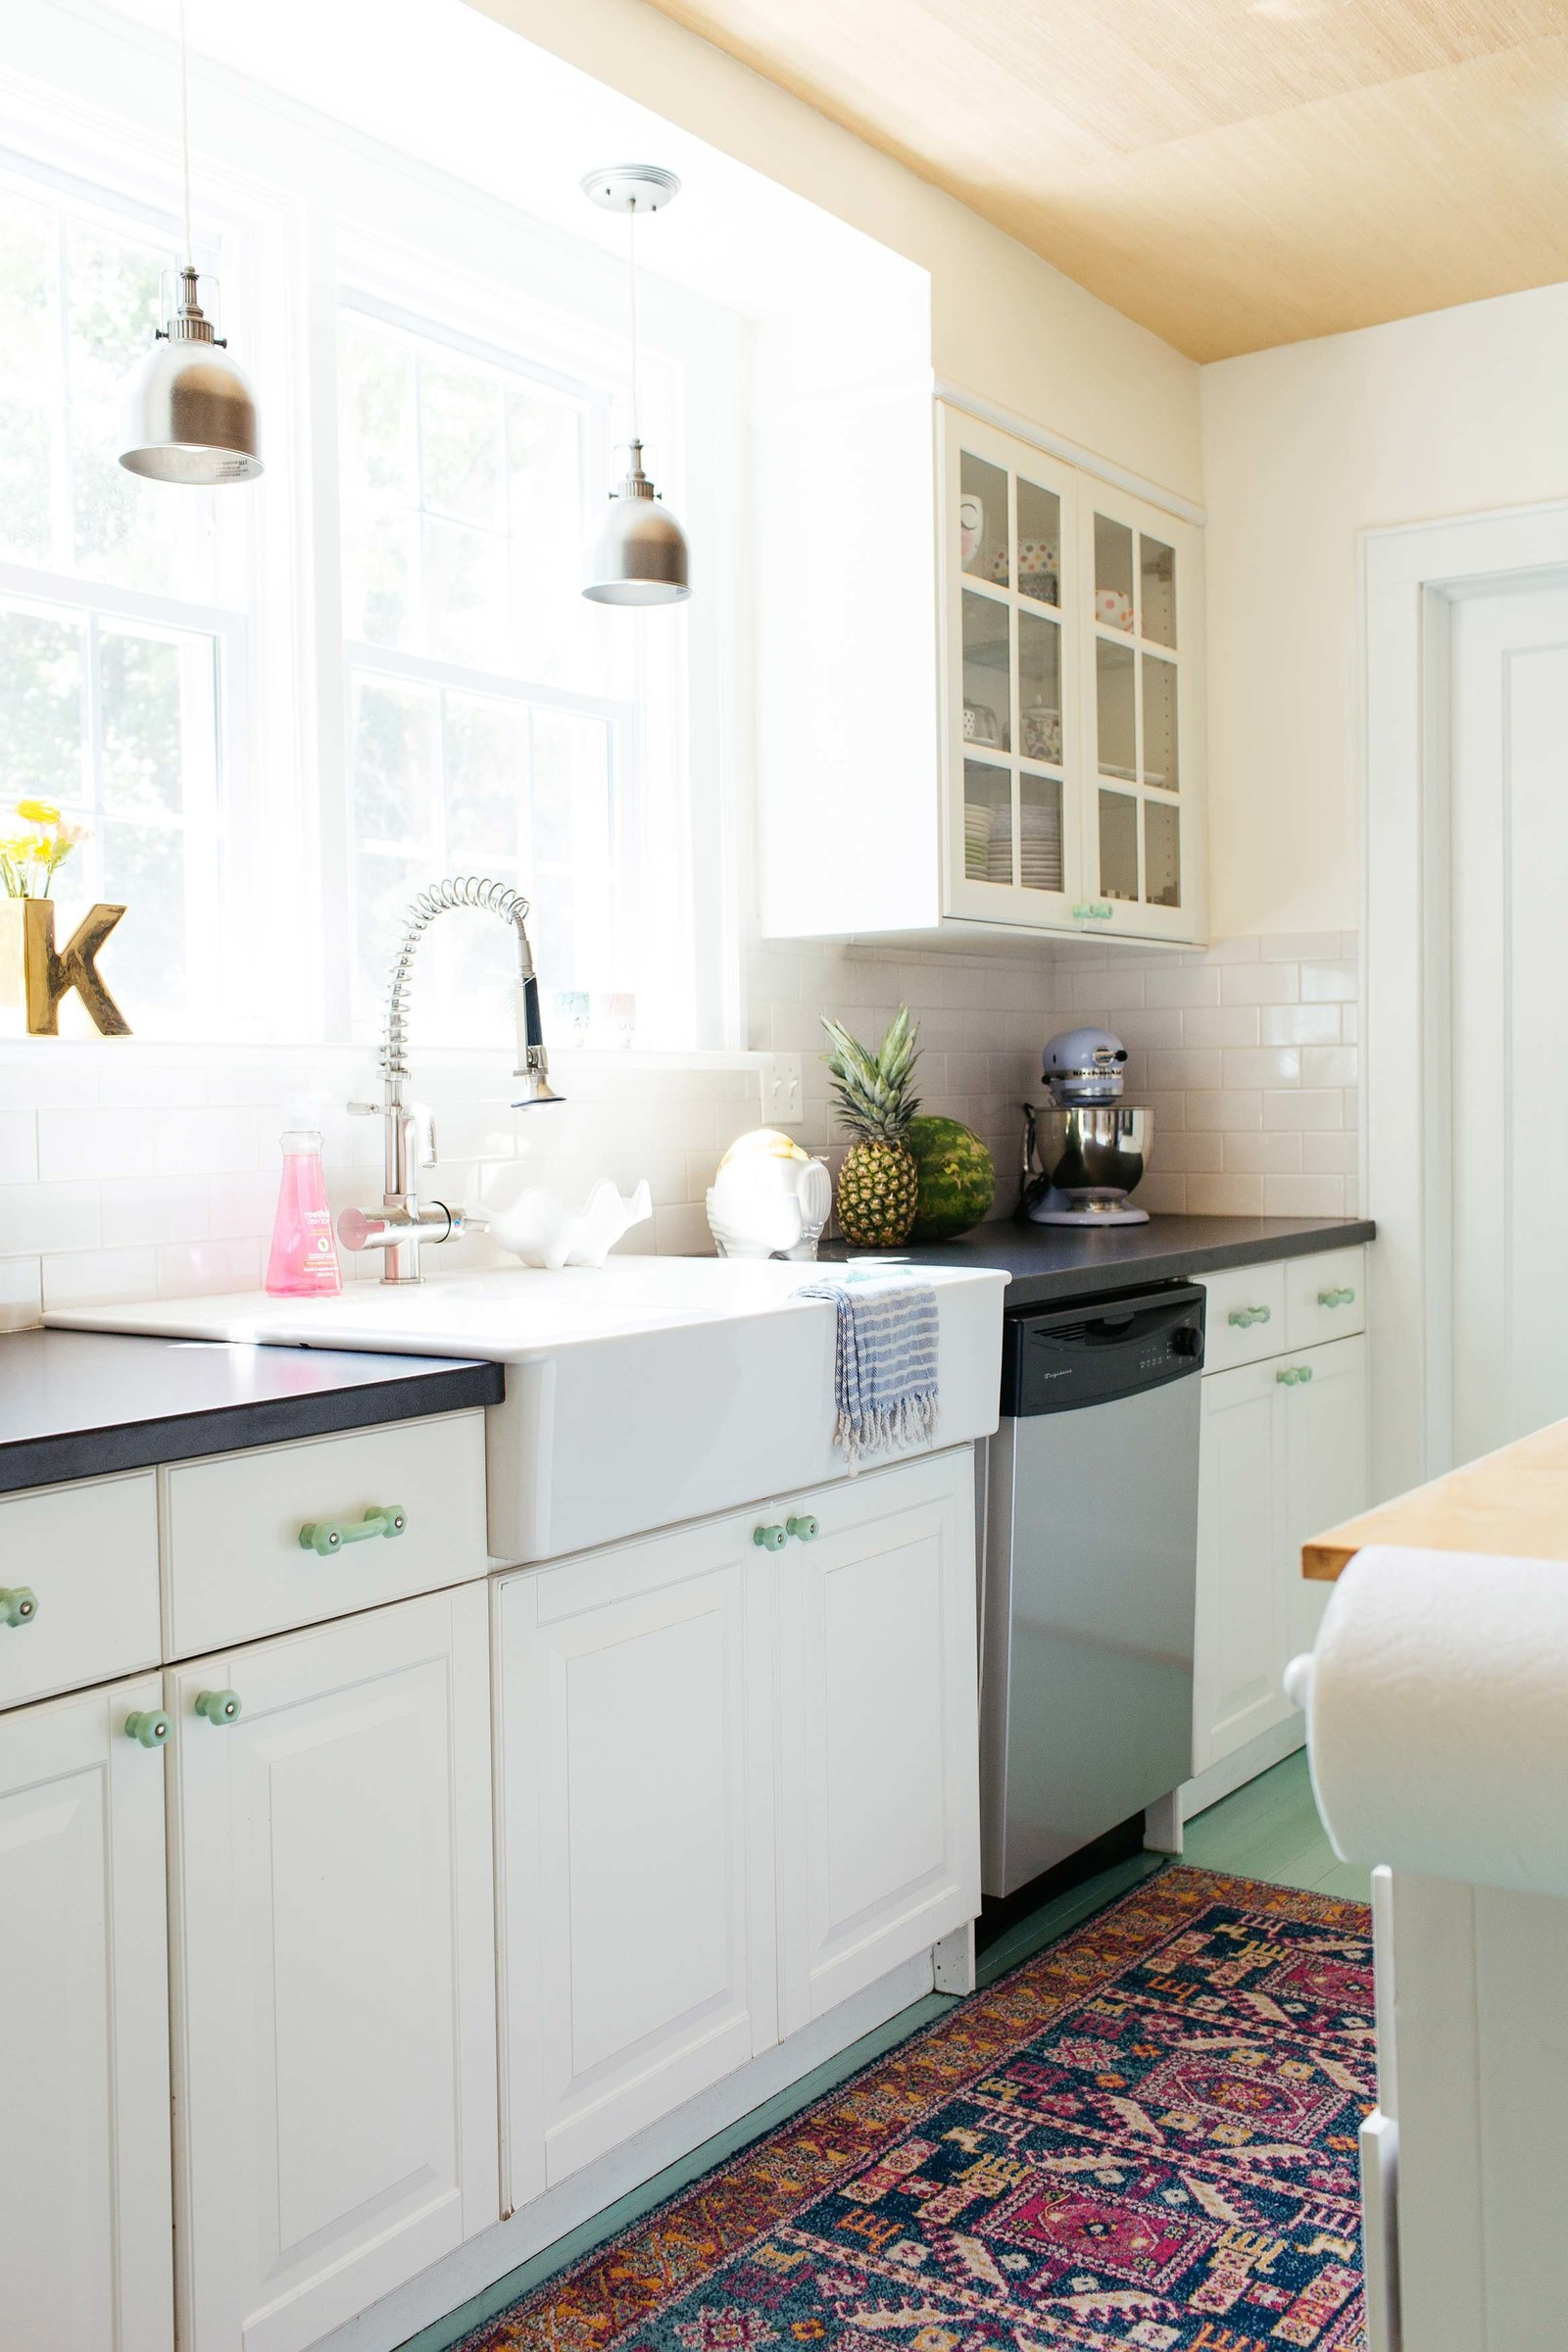 A small kitchen with mint floors and white cabinets.